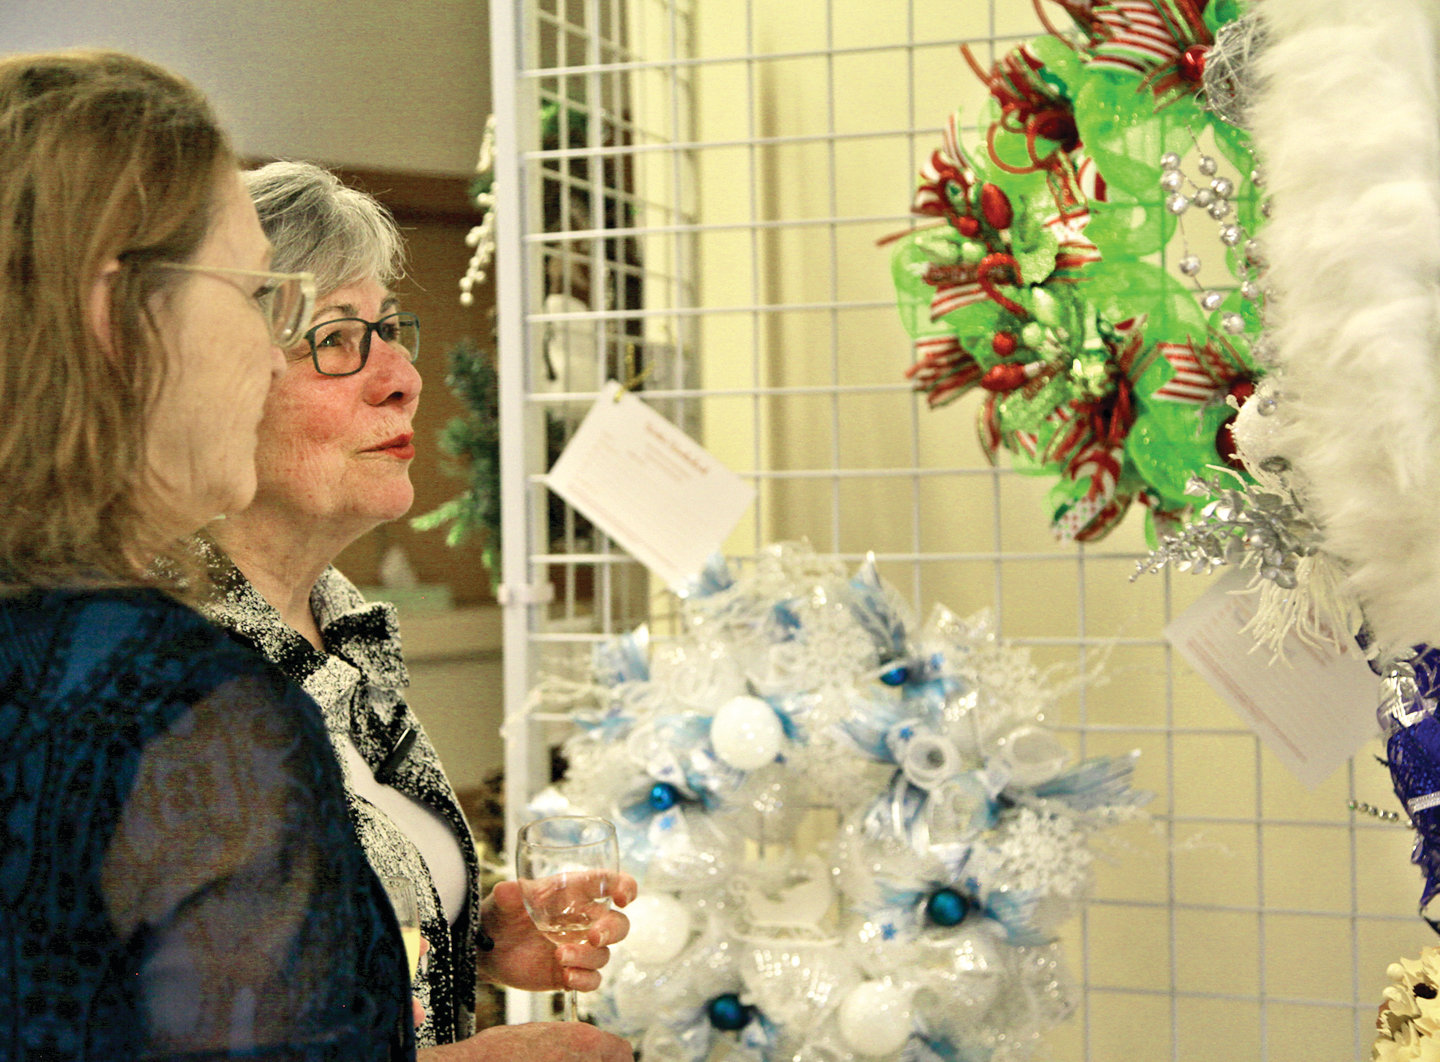 Attendees at the Festival of Wreaths look at decorations donated by area artists and businesses for sale at the event. Proceeds benefit the Jefferson Healthcare Foundation.